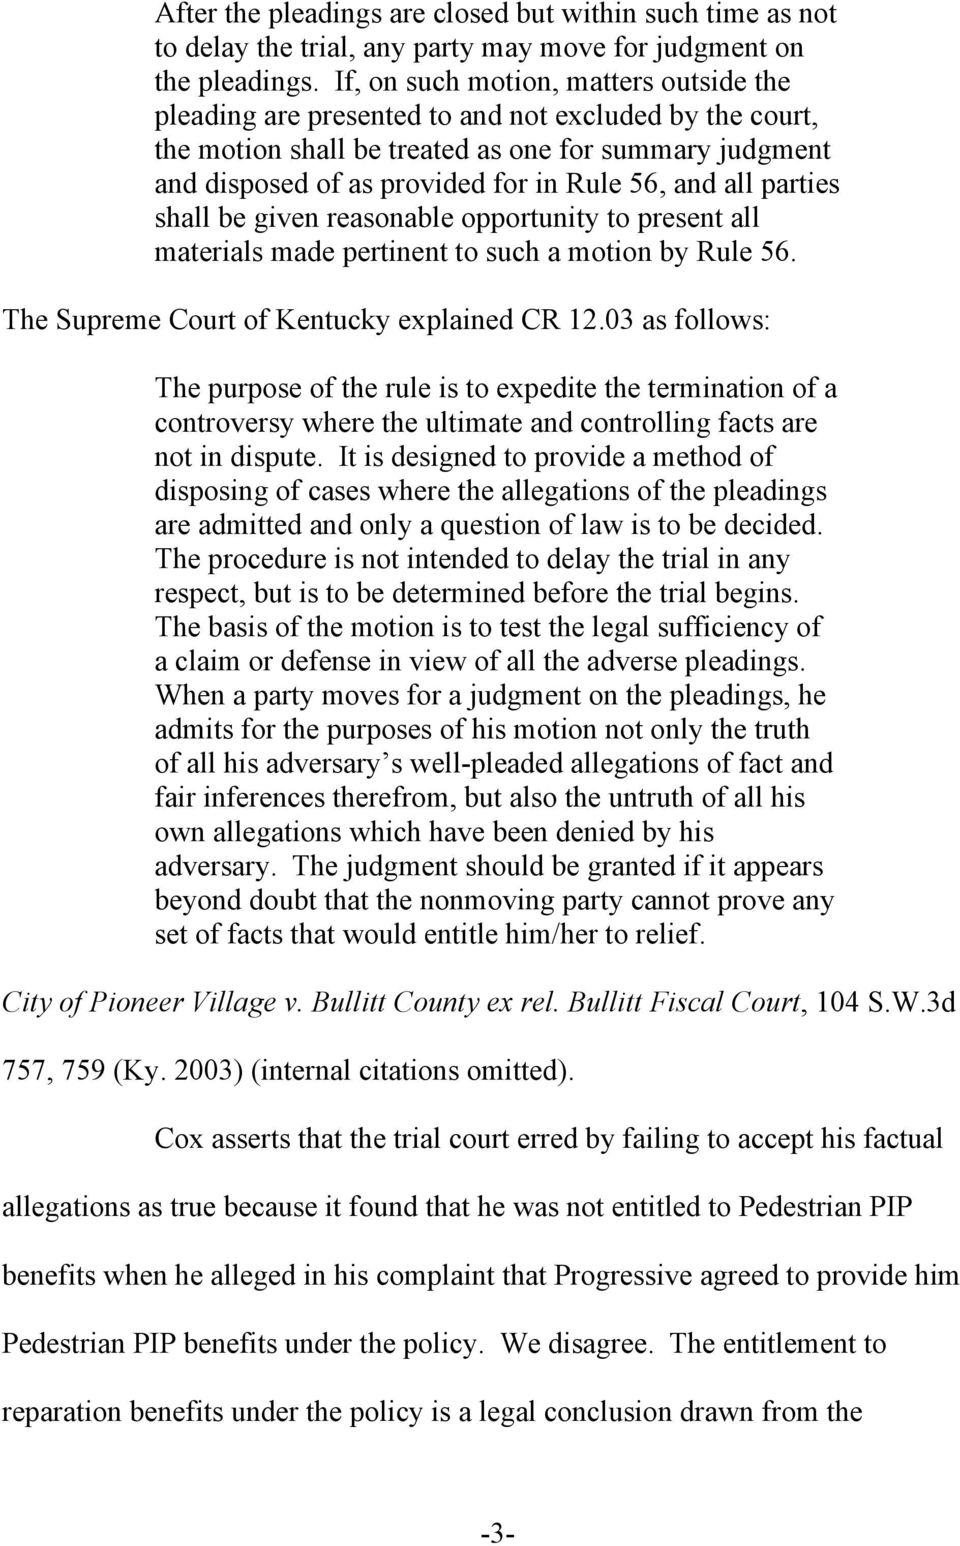 and all parties shall be given reasonable opportunity to present all materials made pertinent to such a motion by Rule 56. The Supreme Court of Kentucky explained CR 12.